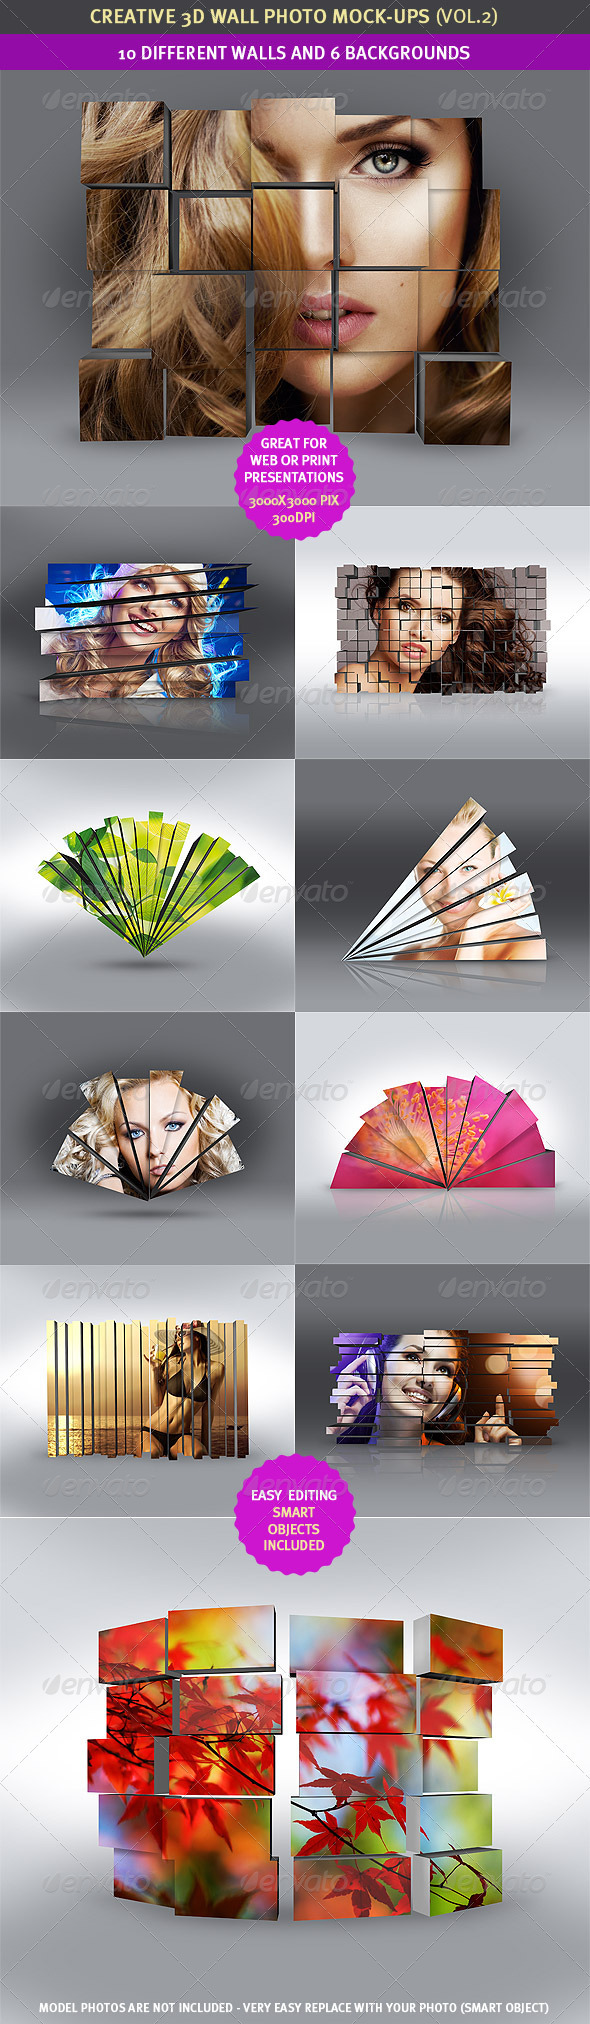 3D Wall Photo Mock-Ups 2 - Miscellaneous Displays